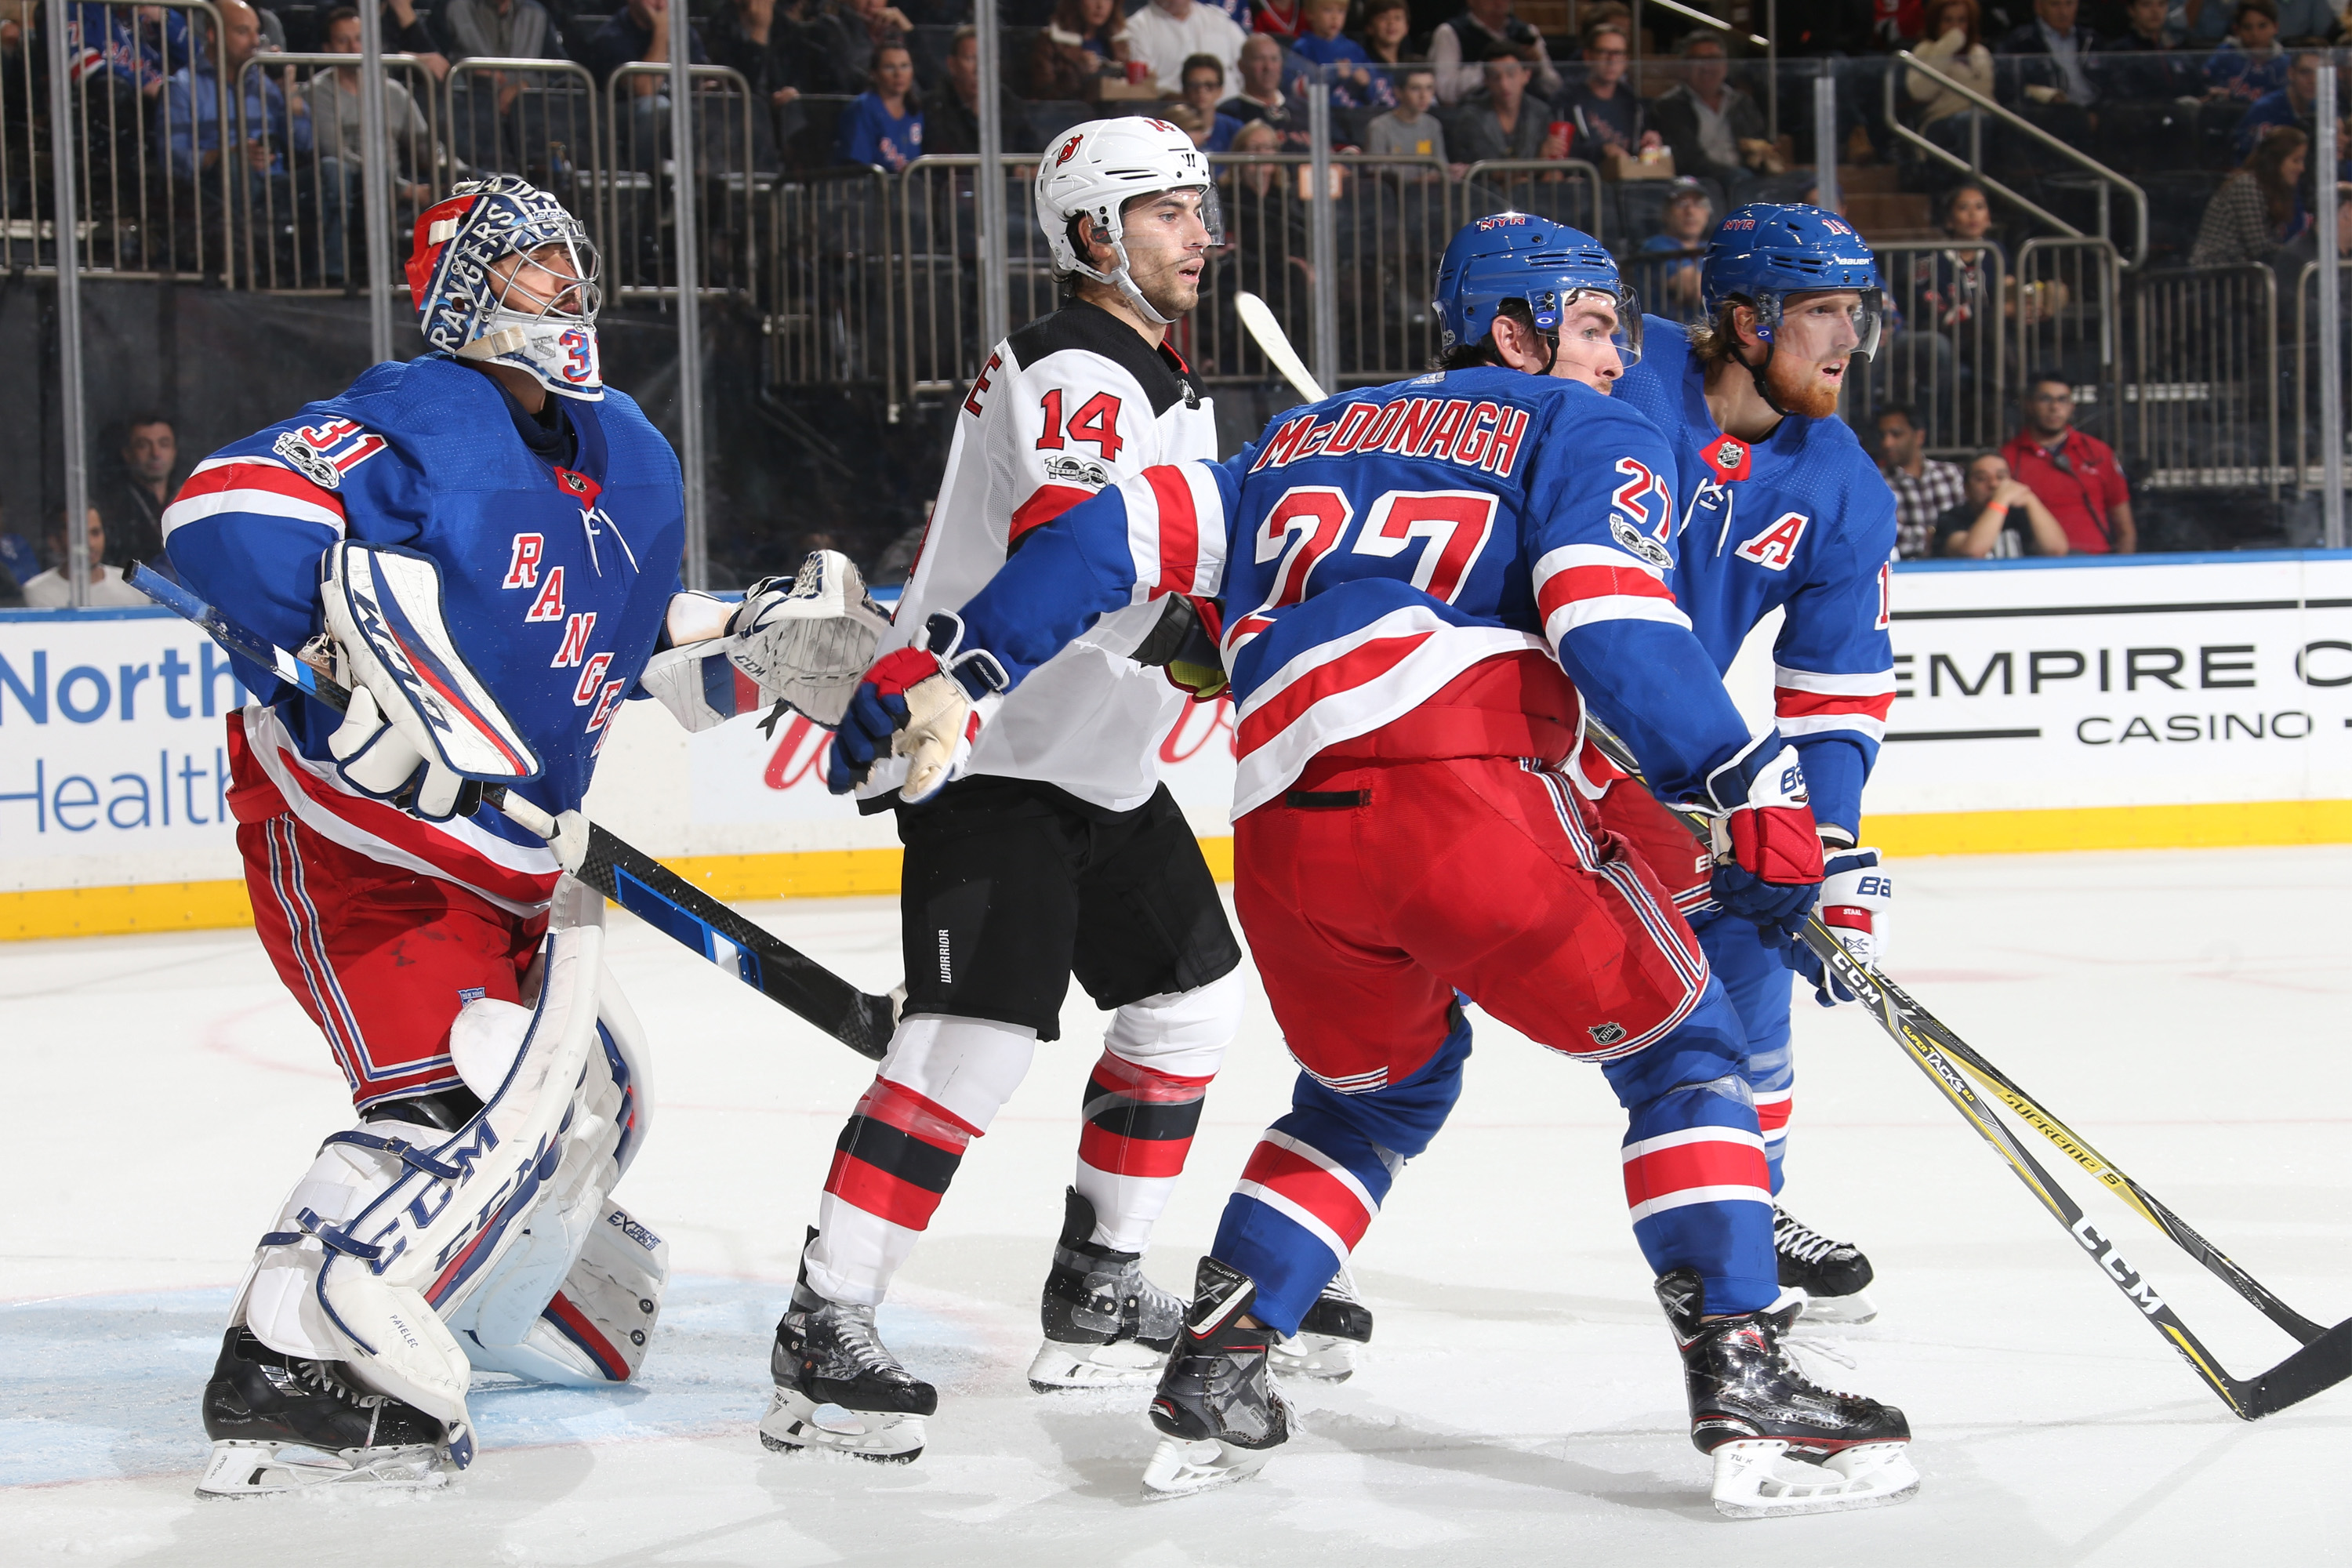 Rangers get the points they need with hard-fought win over Devils